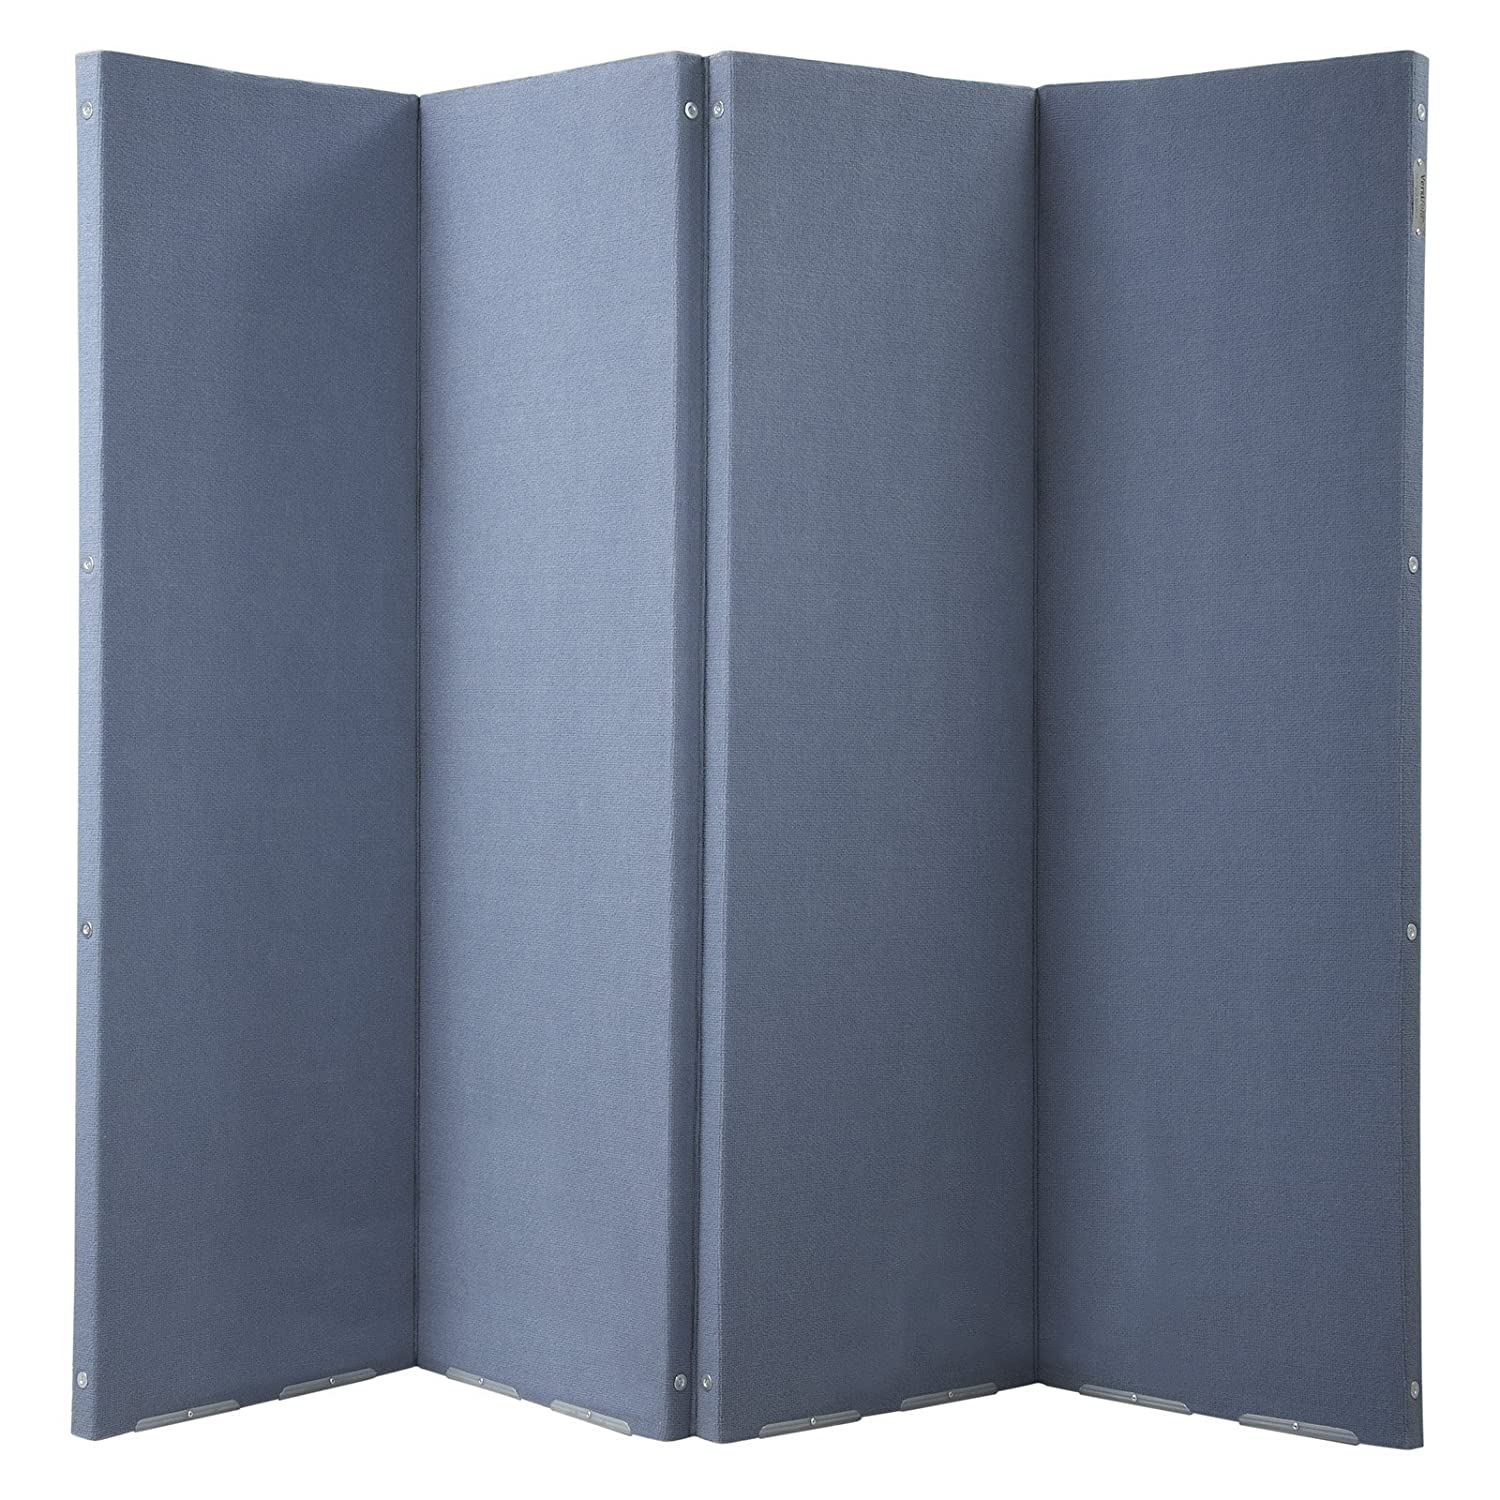 Amazon.com: Versare Versifold Sound Control Room Divider   8W X 6.5H Ft.:  Industrial U0026 Scientific